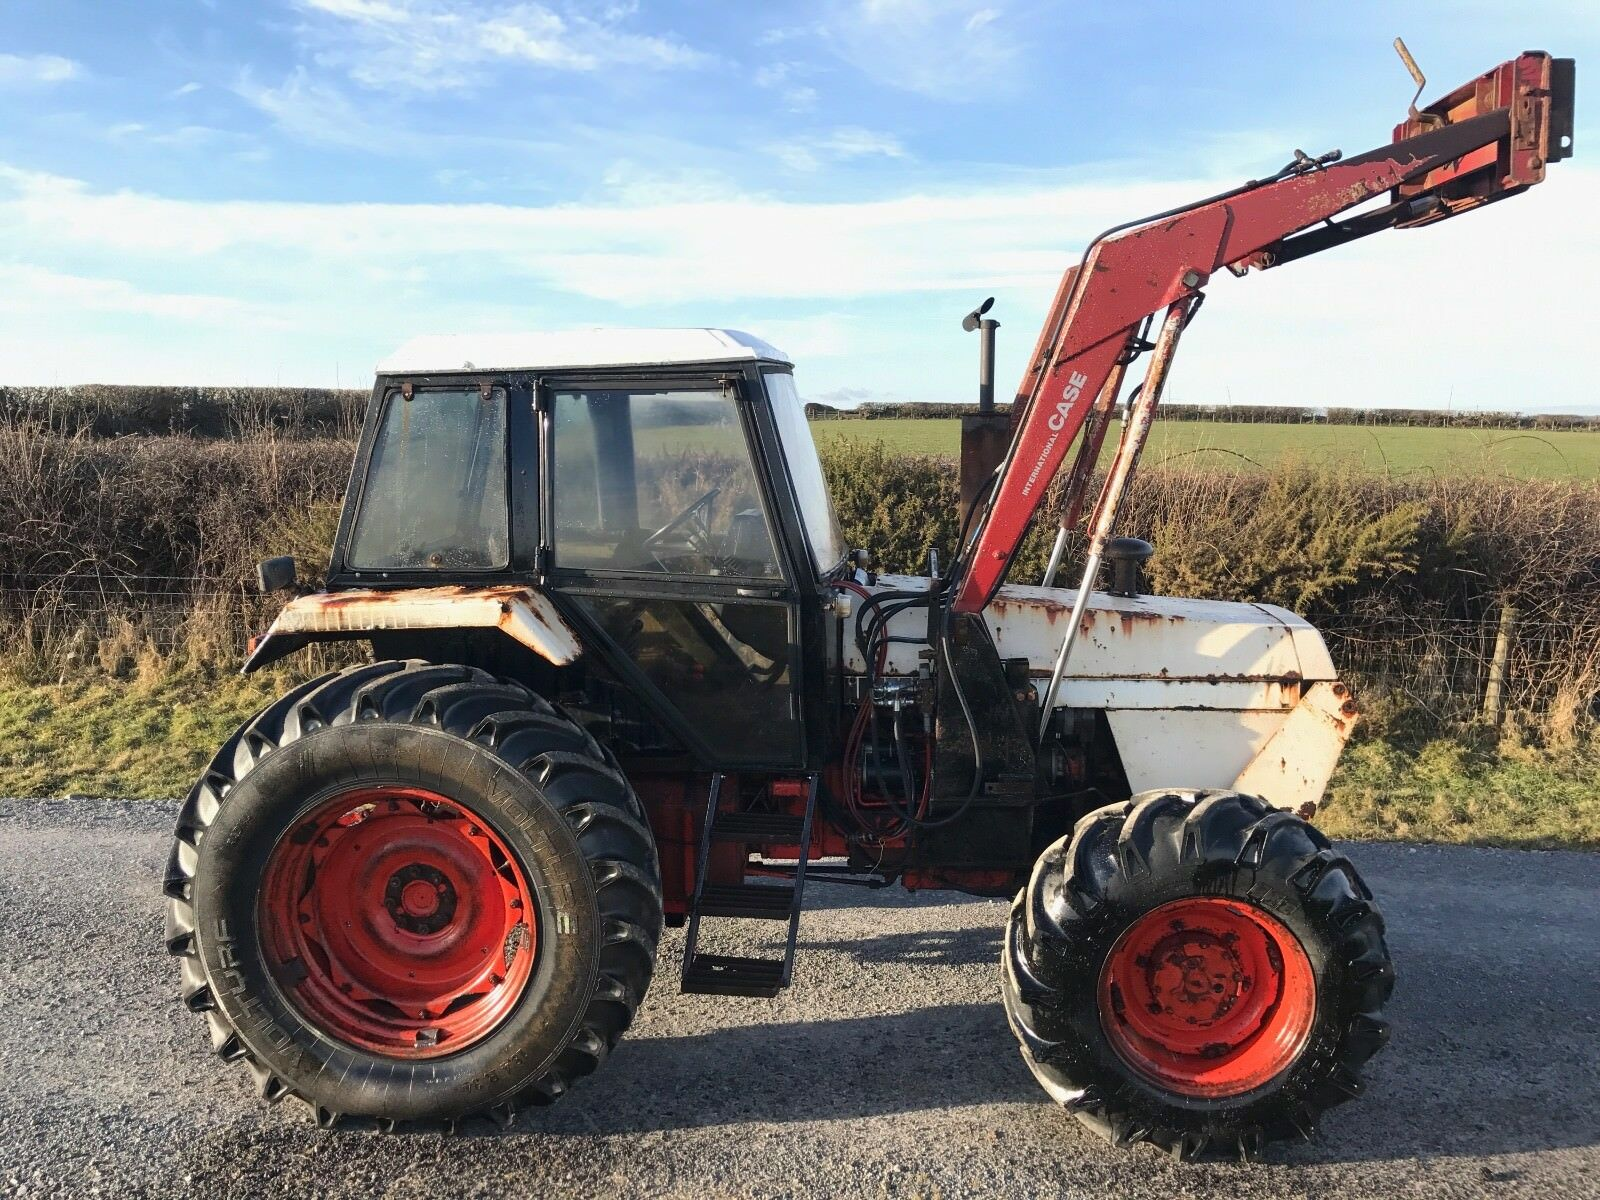 Case David Brown 1690 loader tractor 4x4 No Vat Delivery available 1 of 11  See More